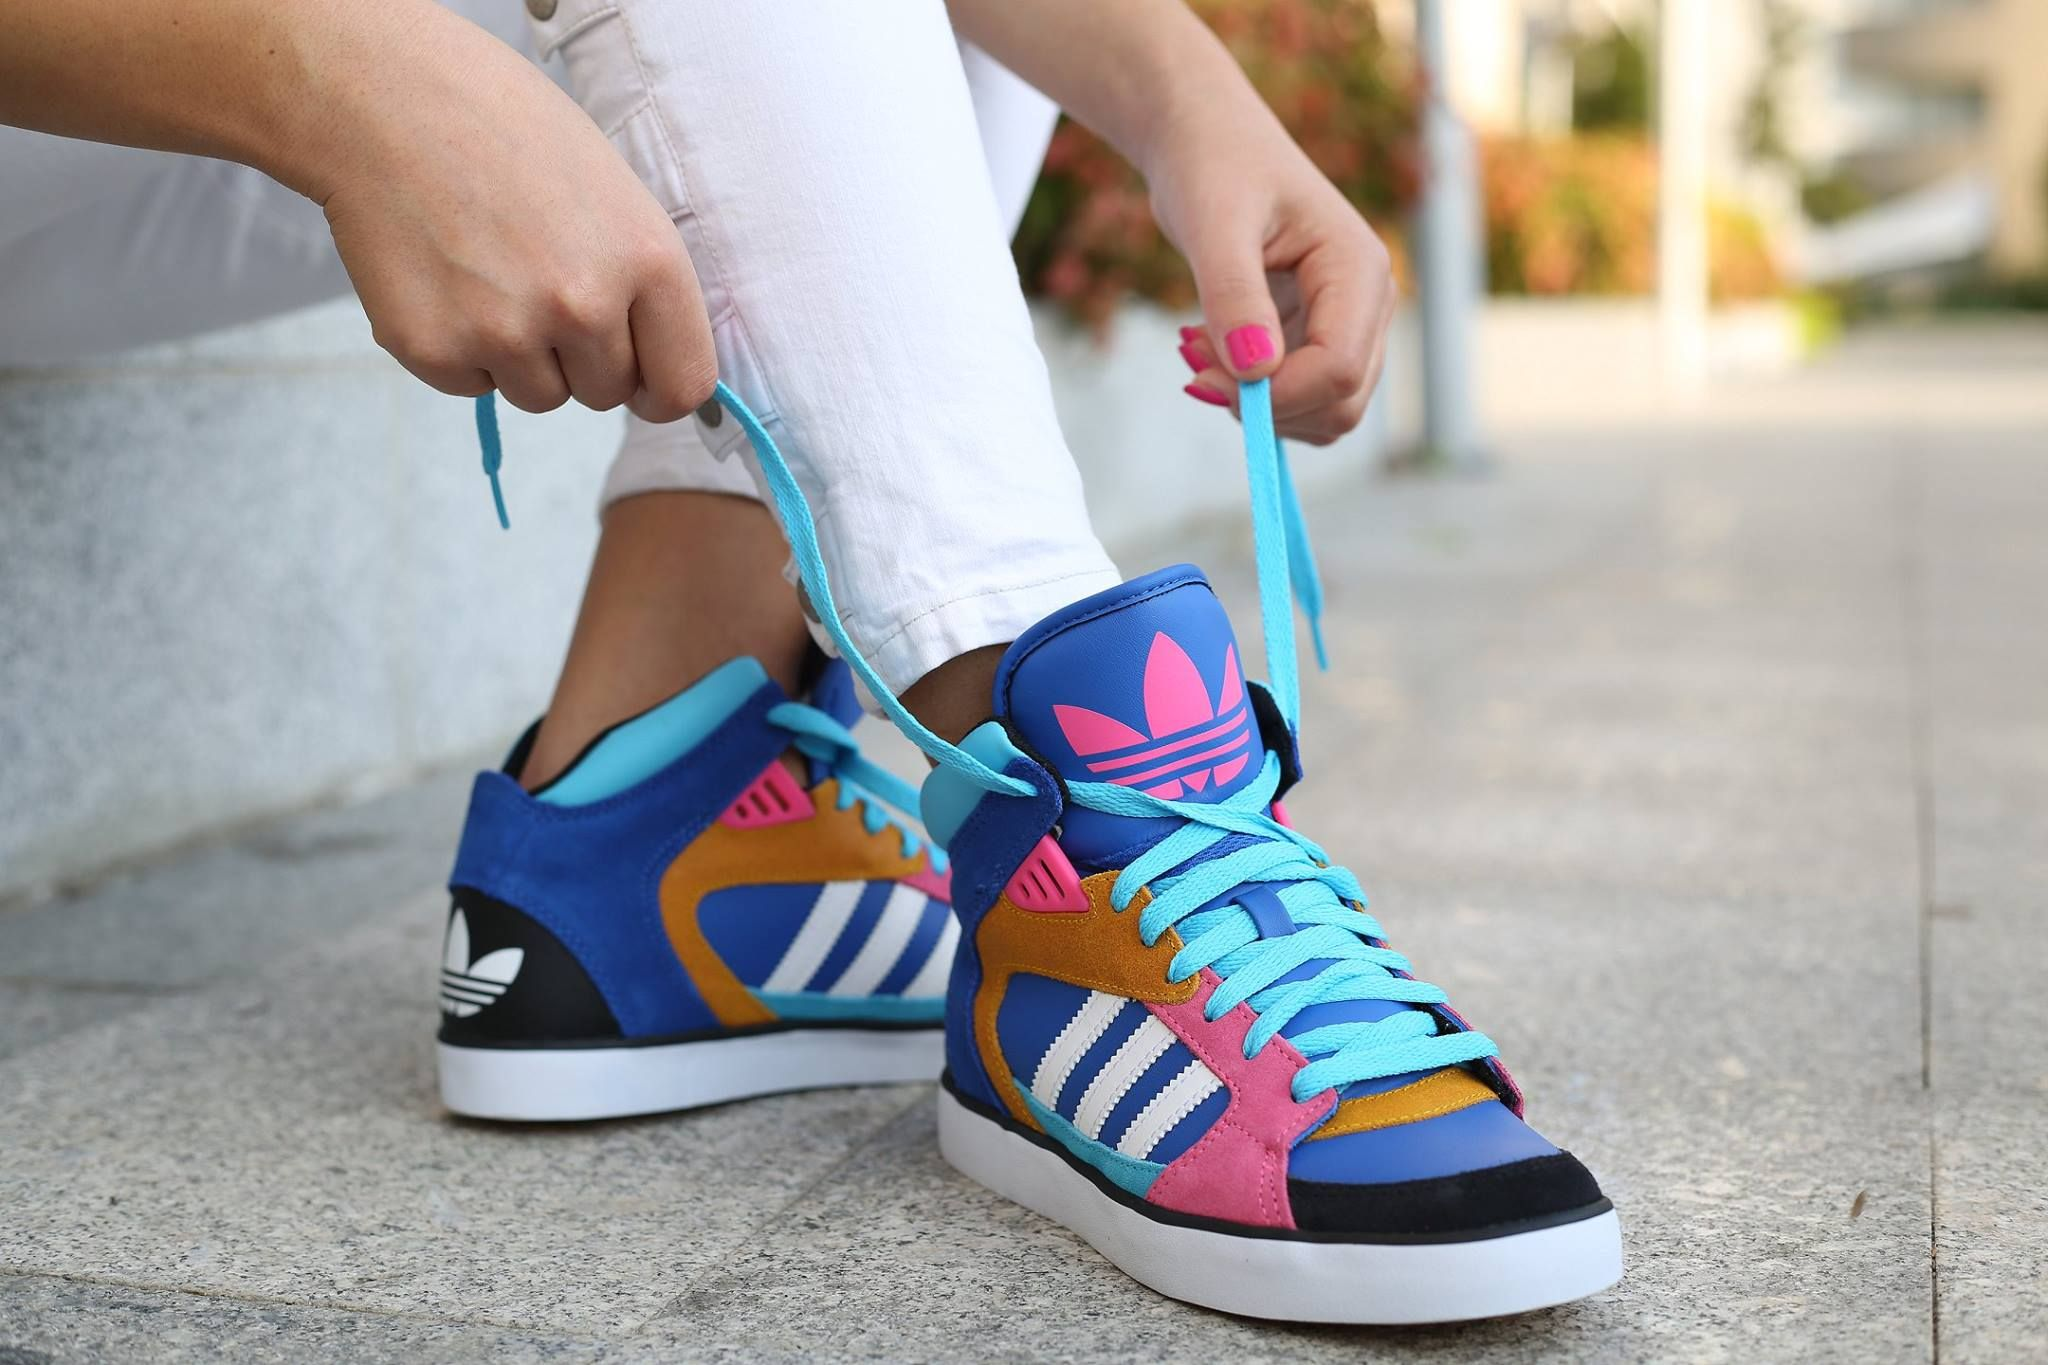 Adidas Originals M20834 Amberlight W Adidas Adidasoriginals